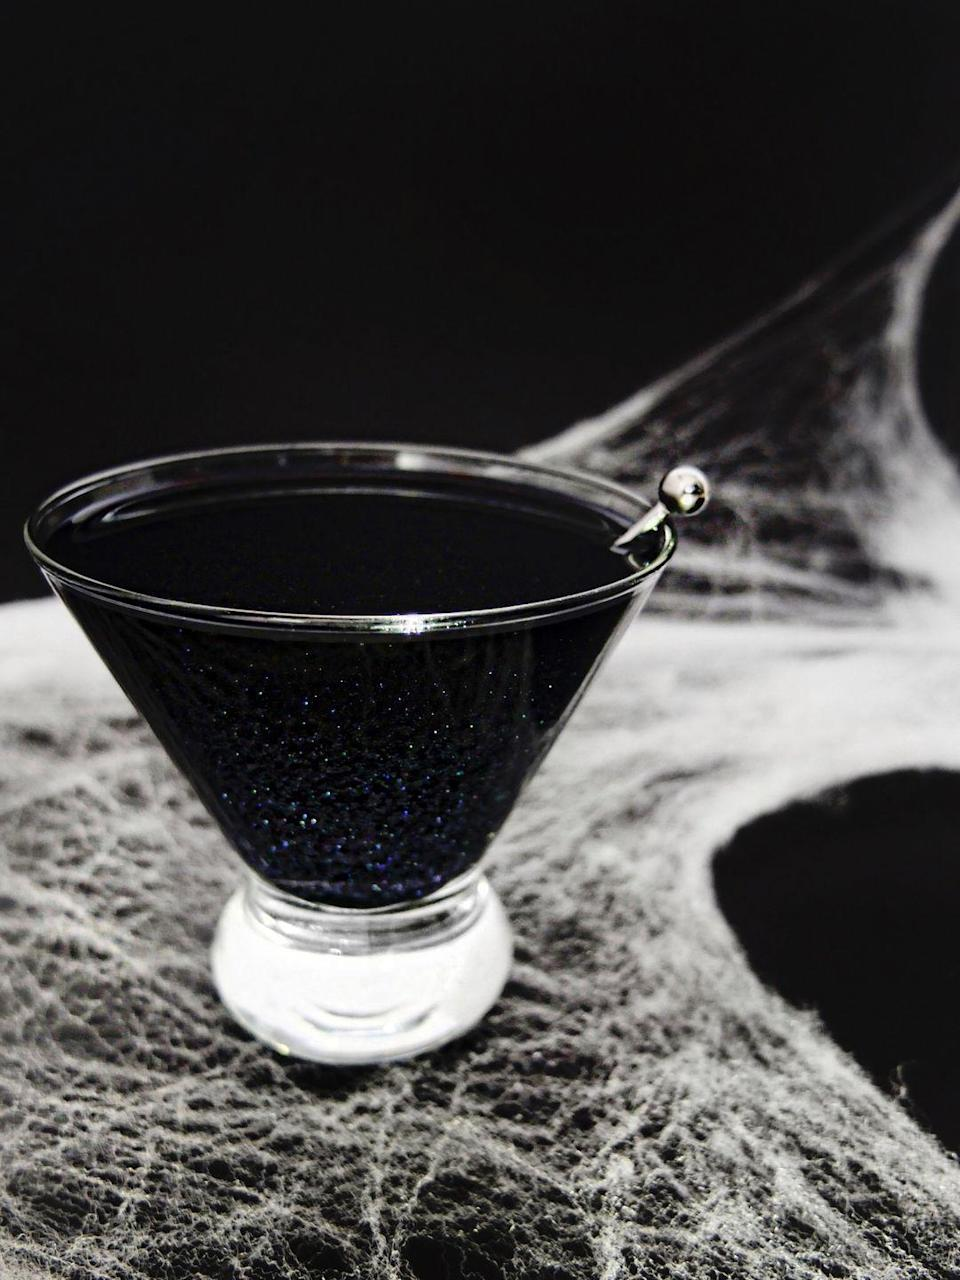 "<p>Scour the shelves at your local liquor stores until you find black vodka — yep, it exists. Then throw in some edible glitter to make it a drink fit for the festivities.</p><p><a href=""https://www.elletalk.com/blog/2016/black-magic"" rel=""nofollow noopener"" target=""_blank"" data-ylk=""slk:Get the recipe from Elle Talk »"" class=""link rapid-noclick-resp""><em>Get the recipe from Elle Talk »</em></a><br></p>"